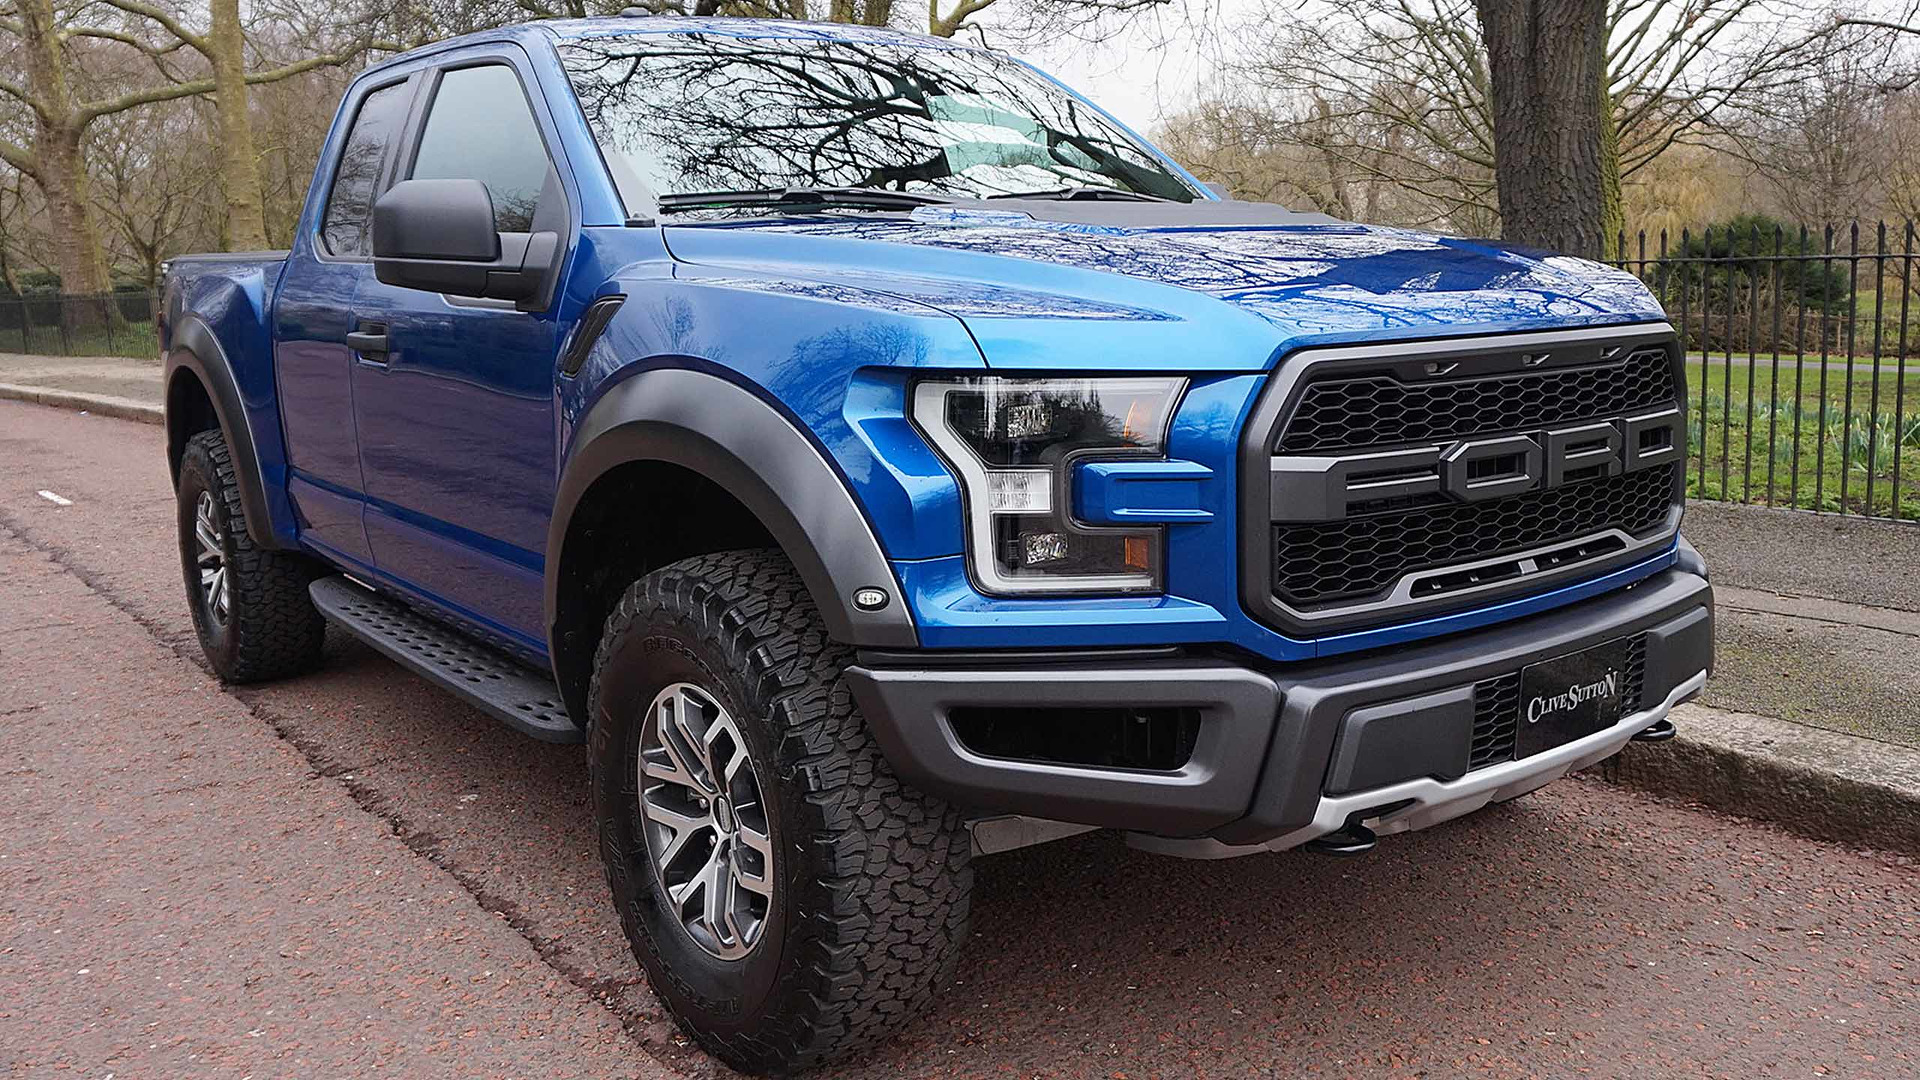 Ford f 150 raptor on sale in uk for £78000